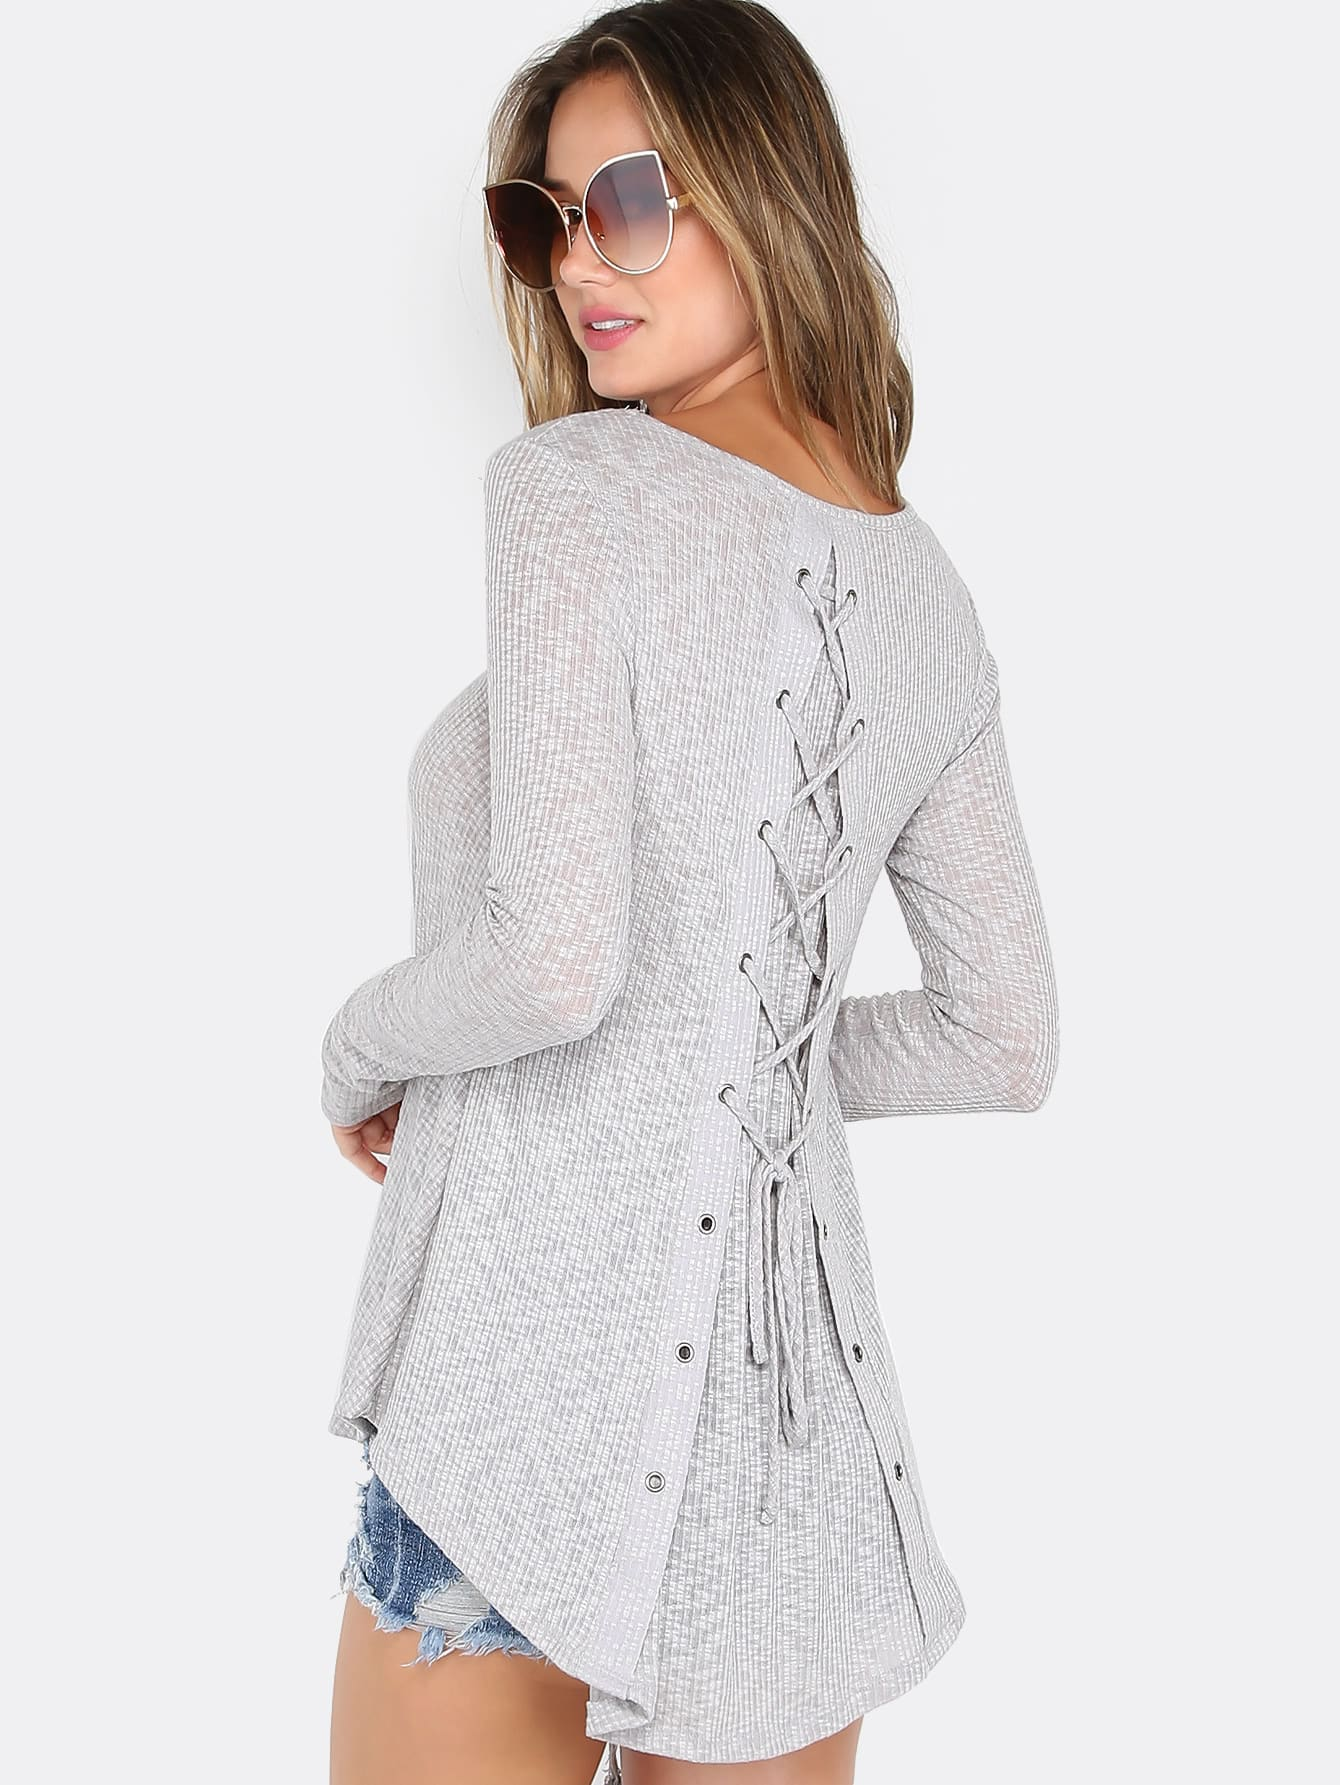 Lace Up Deep Scoop Top HEATHER GREY рубашка в клетку dc woodale deep dyed heather grey